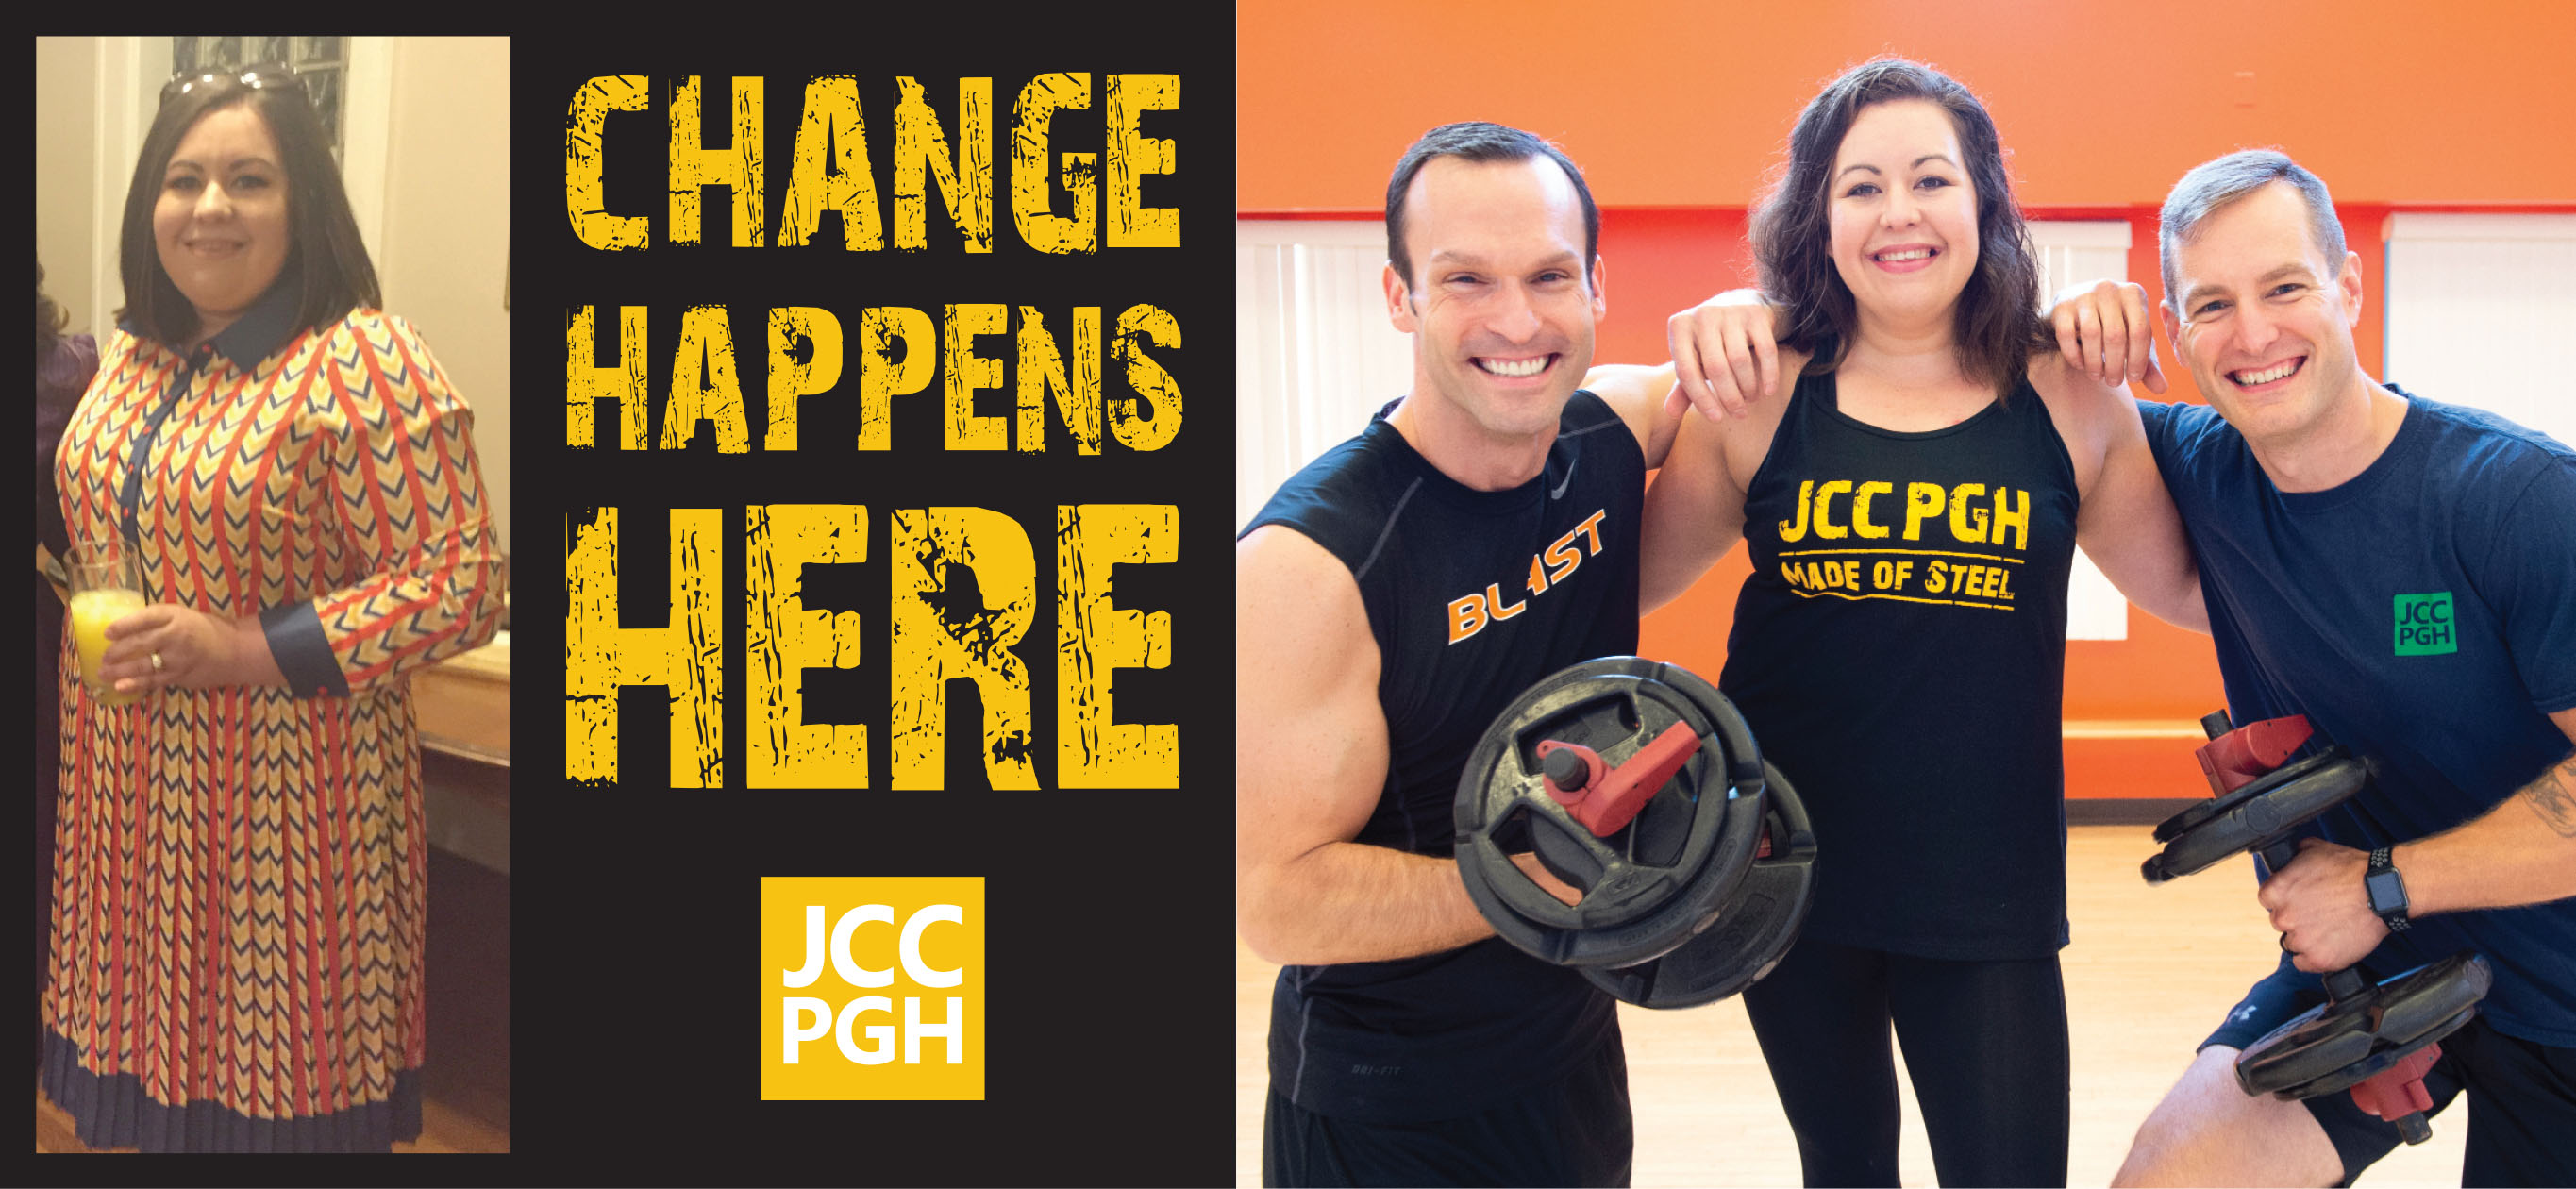 Jens fitness journey: #gymmotivation jcc pittsburgh